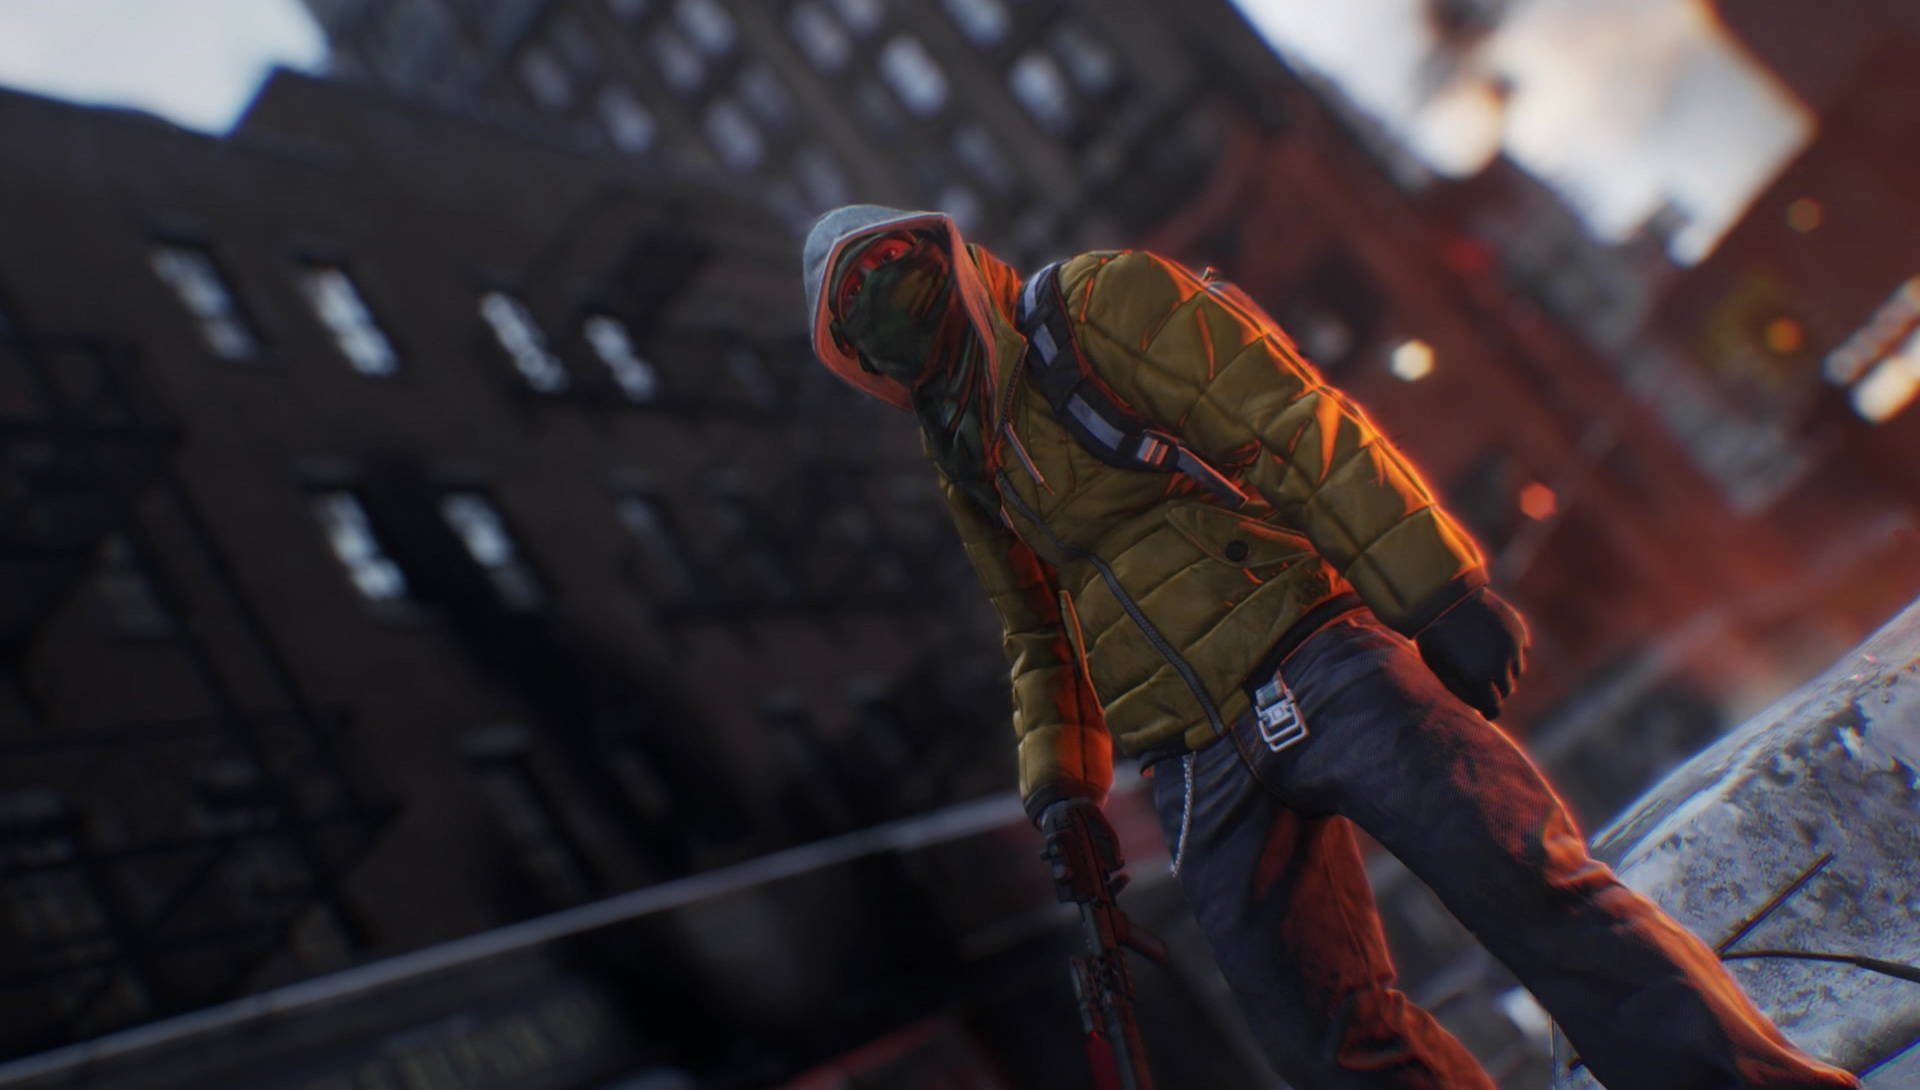 tomclancysthedivision_conflictscreens2_0024